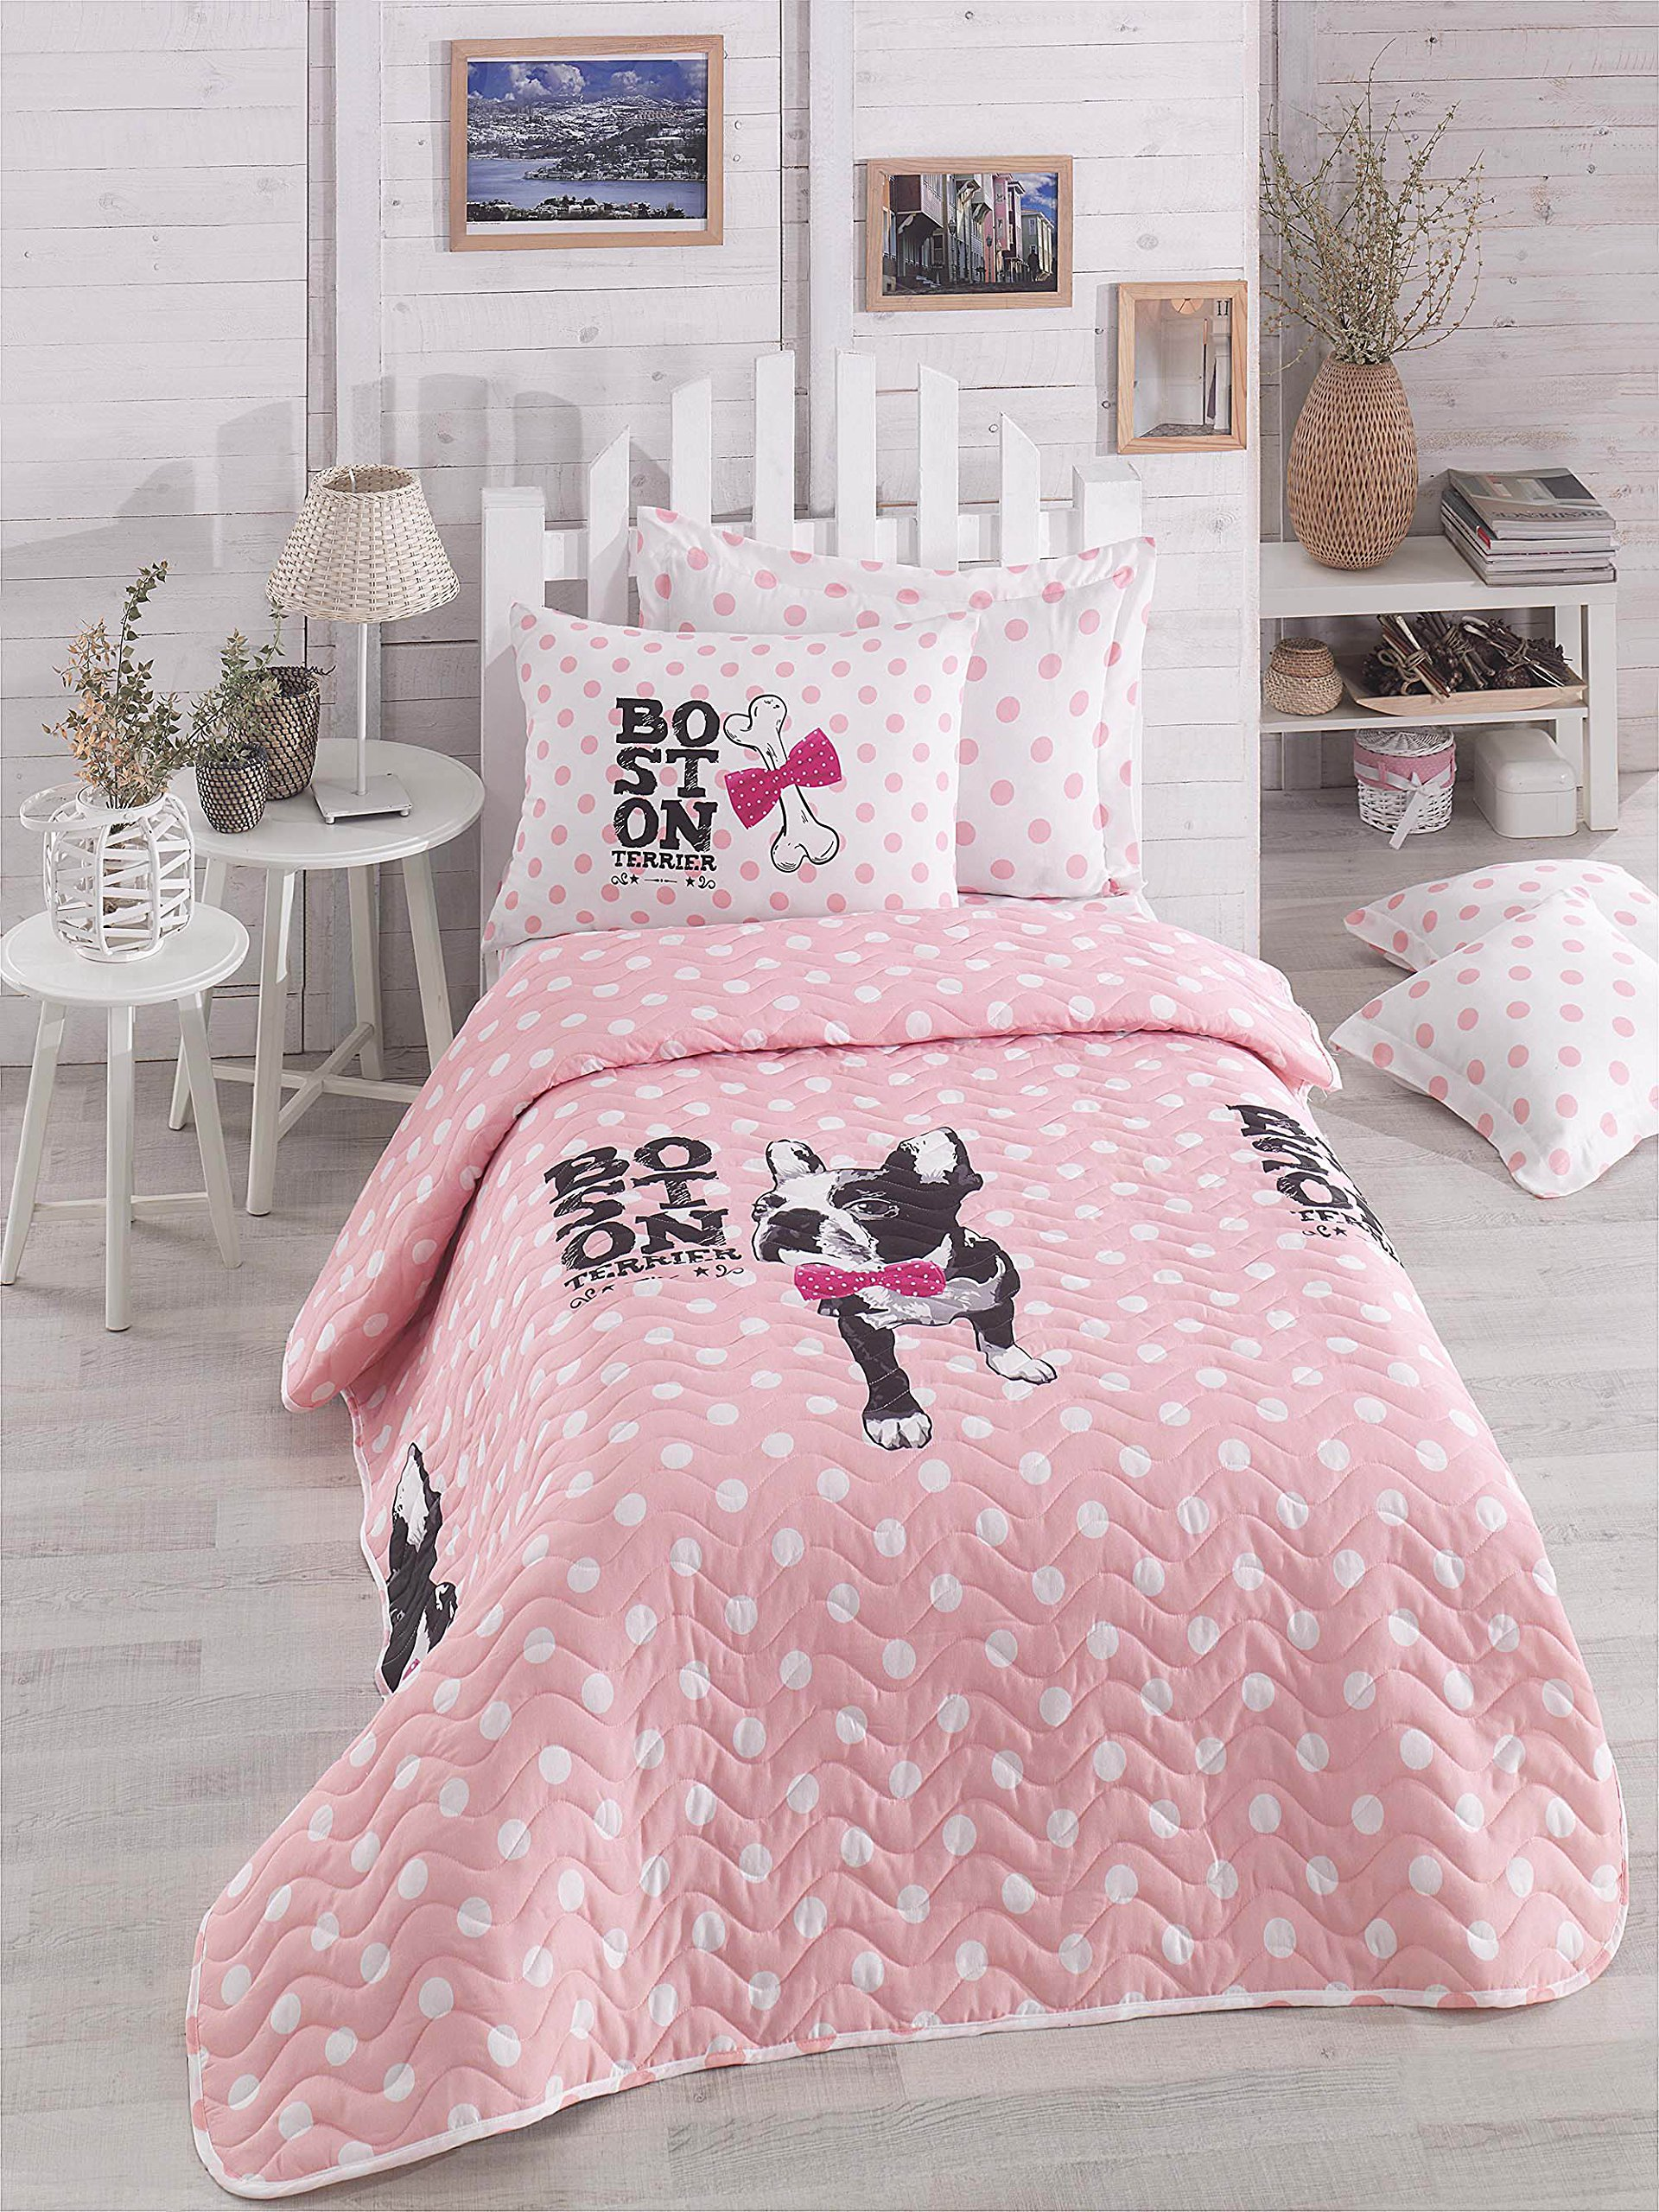 Polka Dot Bedding, Single/Twin Size Bedspread/Coverlet Set, Dogs Themed Girls Bedding, 2 PCS, Pink White